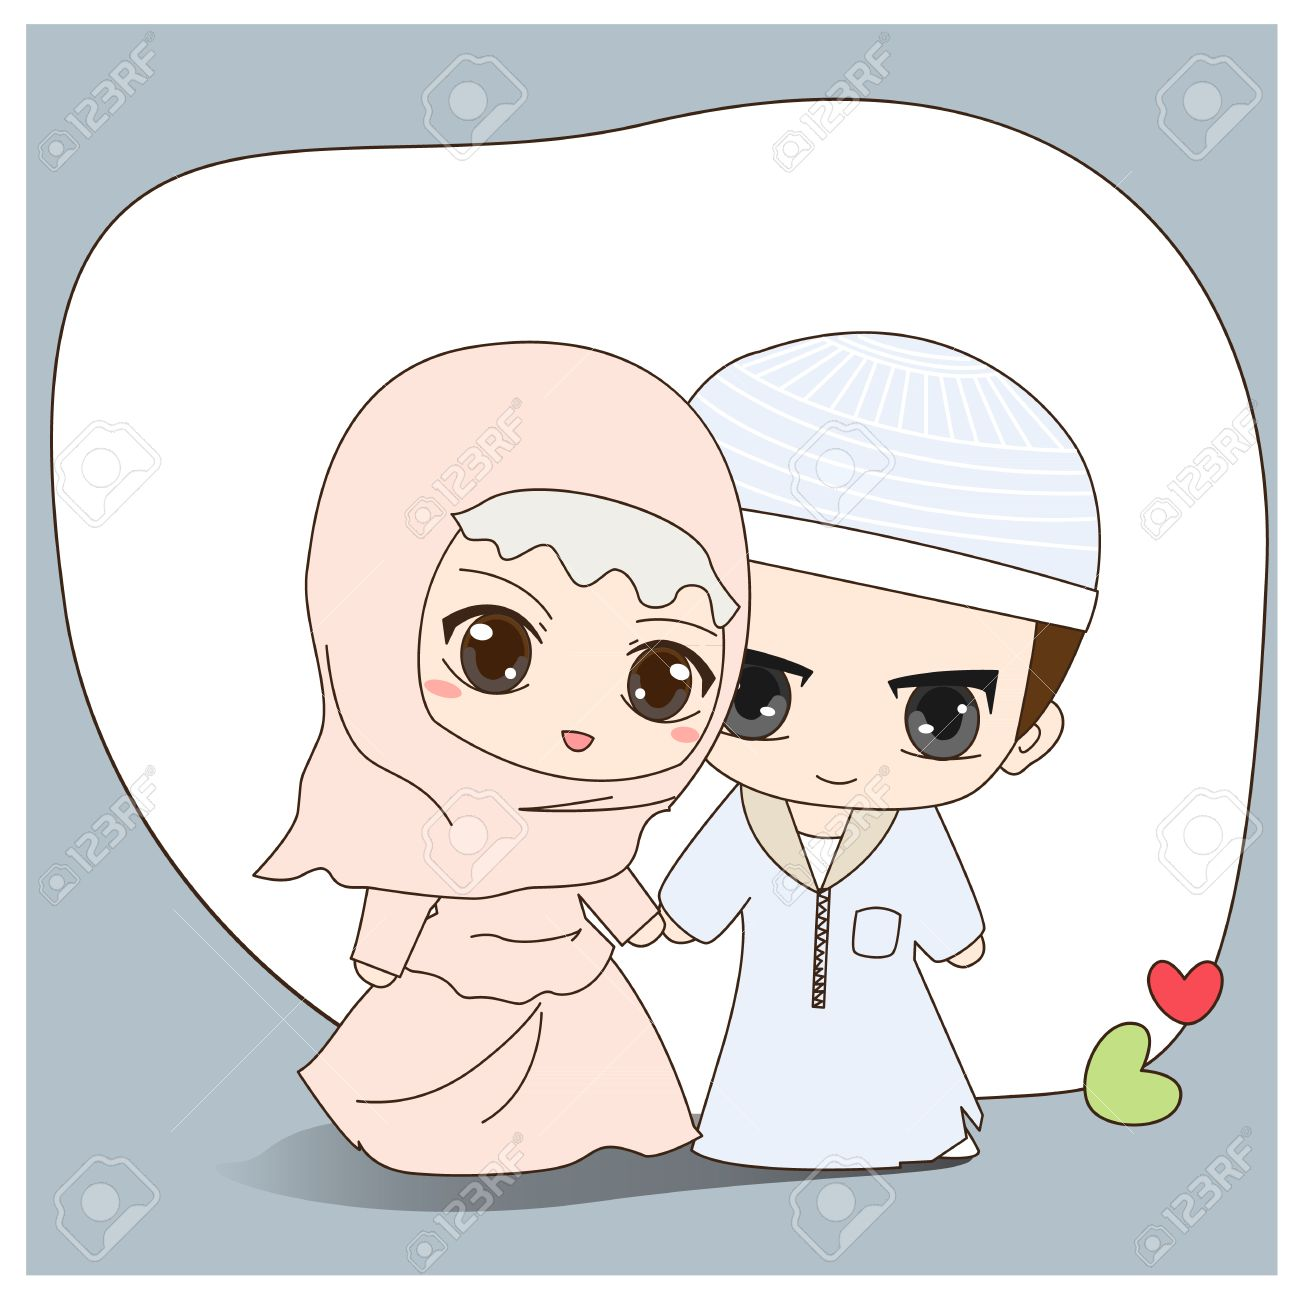 Gambar Kartun Couple Cute Kata Kata